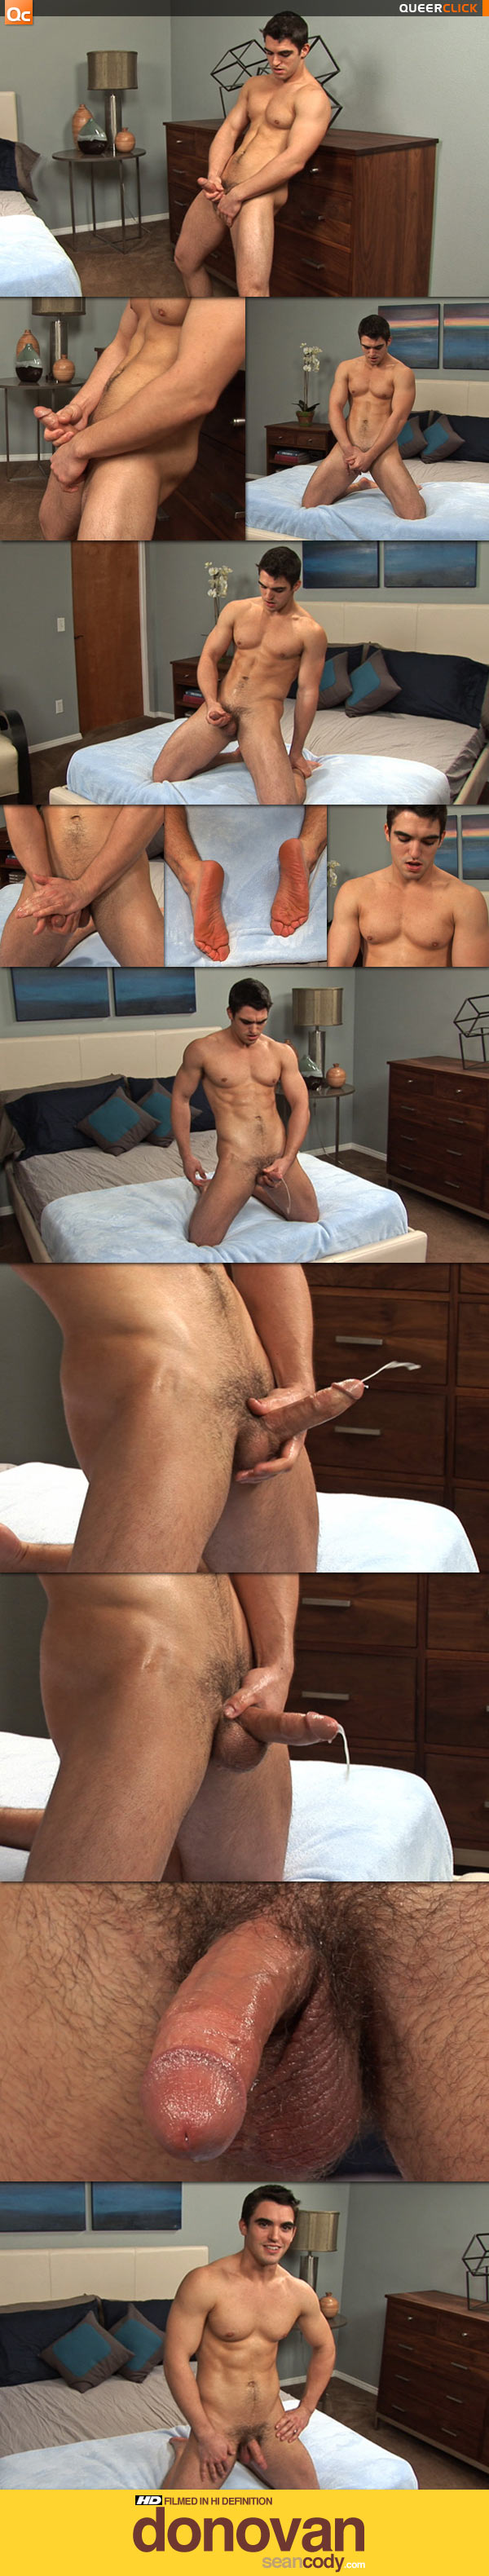 Sean Cody: Donovan